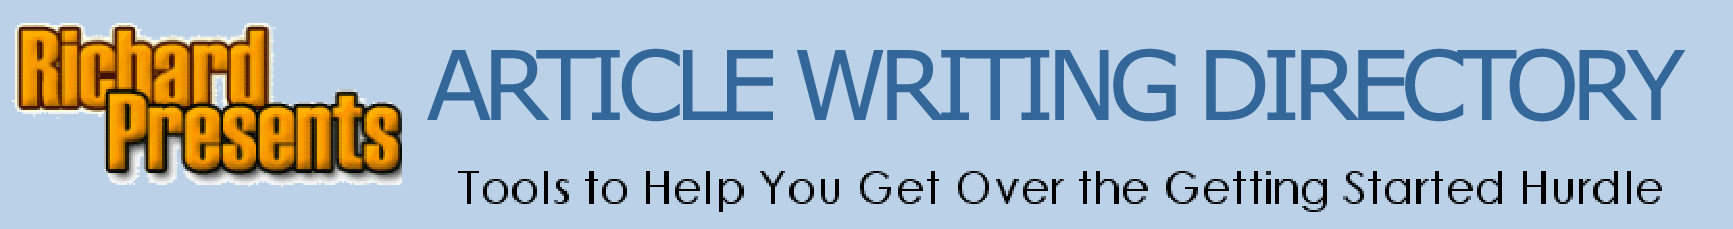 Article Writing  Tools to help you get over the Getting Started Hurdle